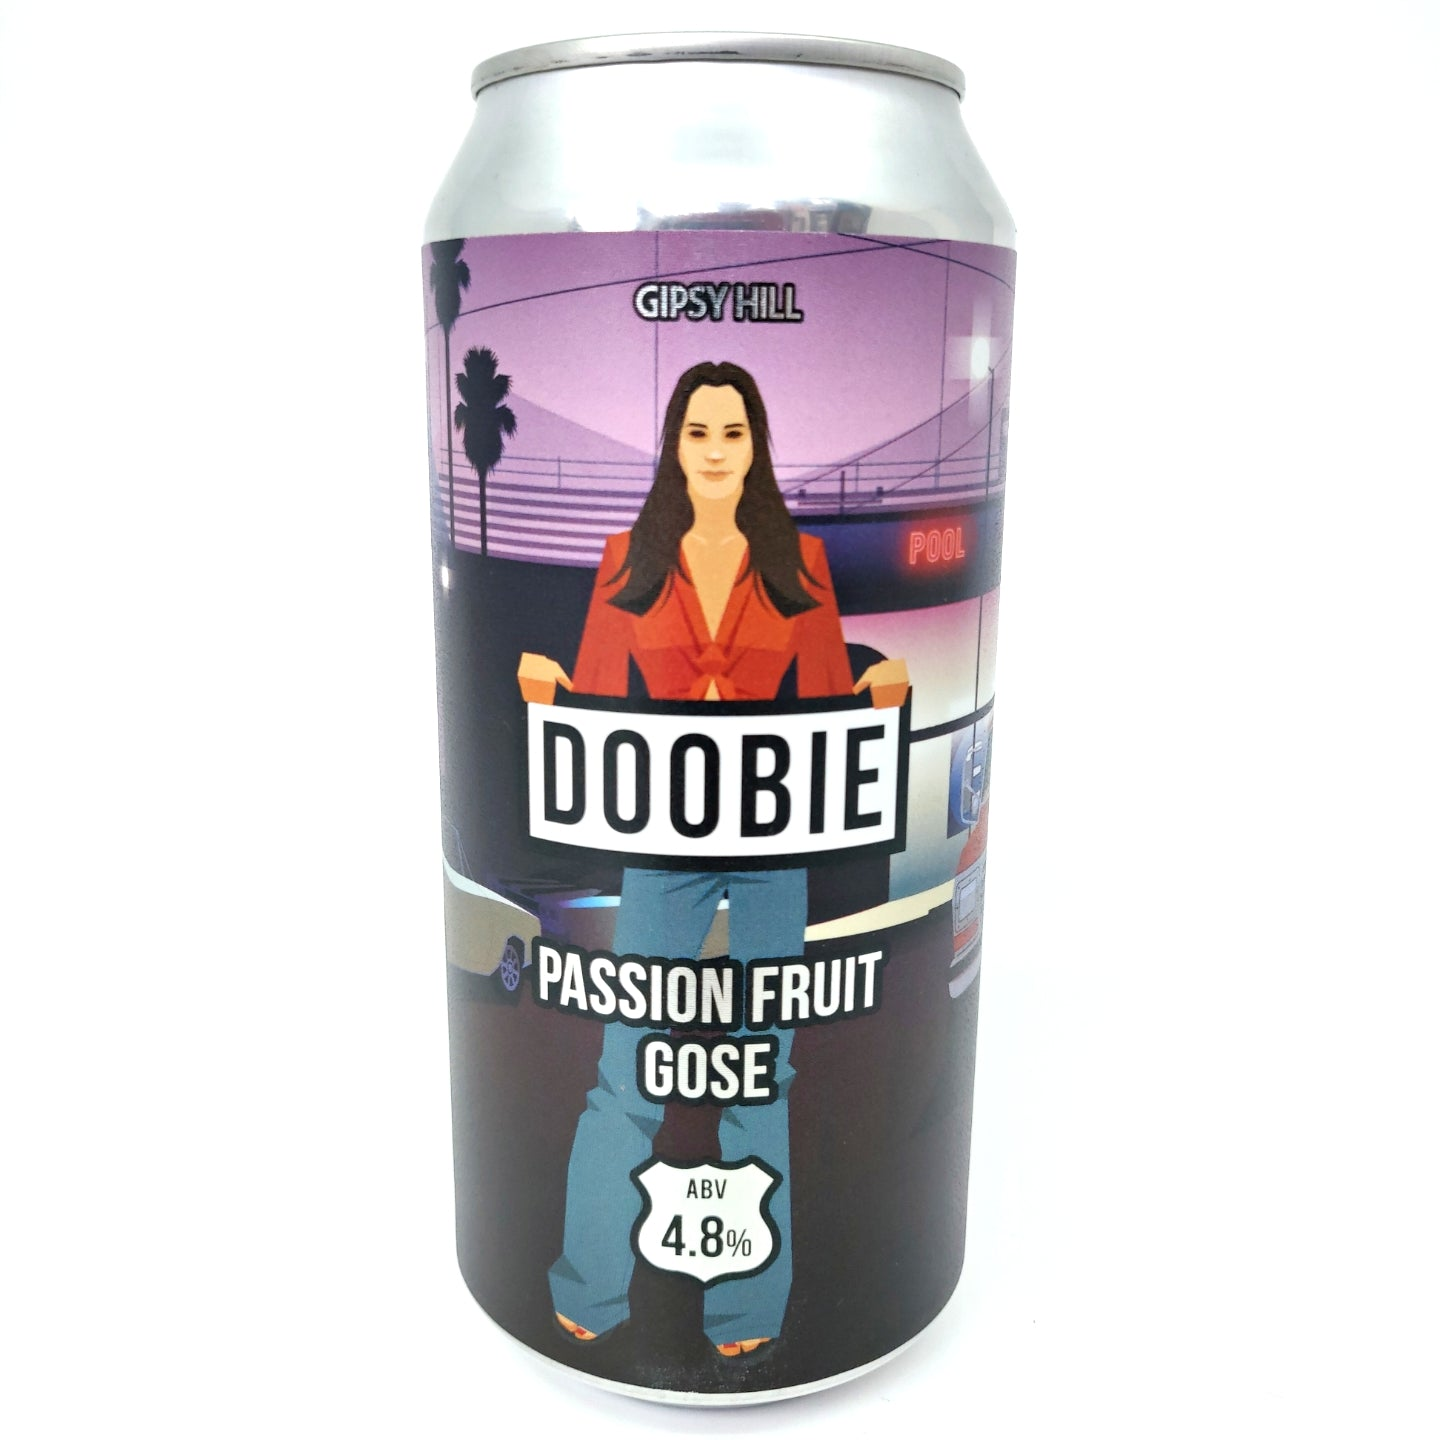 Gipsy Hill Doobie Passion Fruit Gose 4.8% (440ml can)-Hop Burns & Black